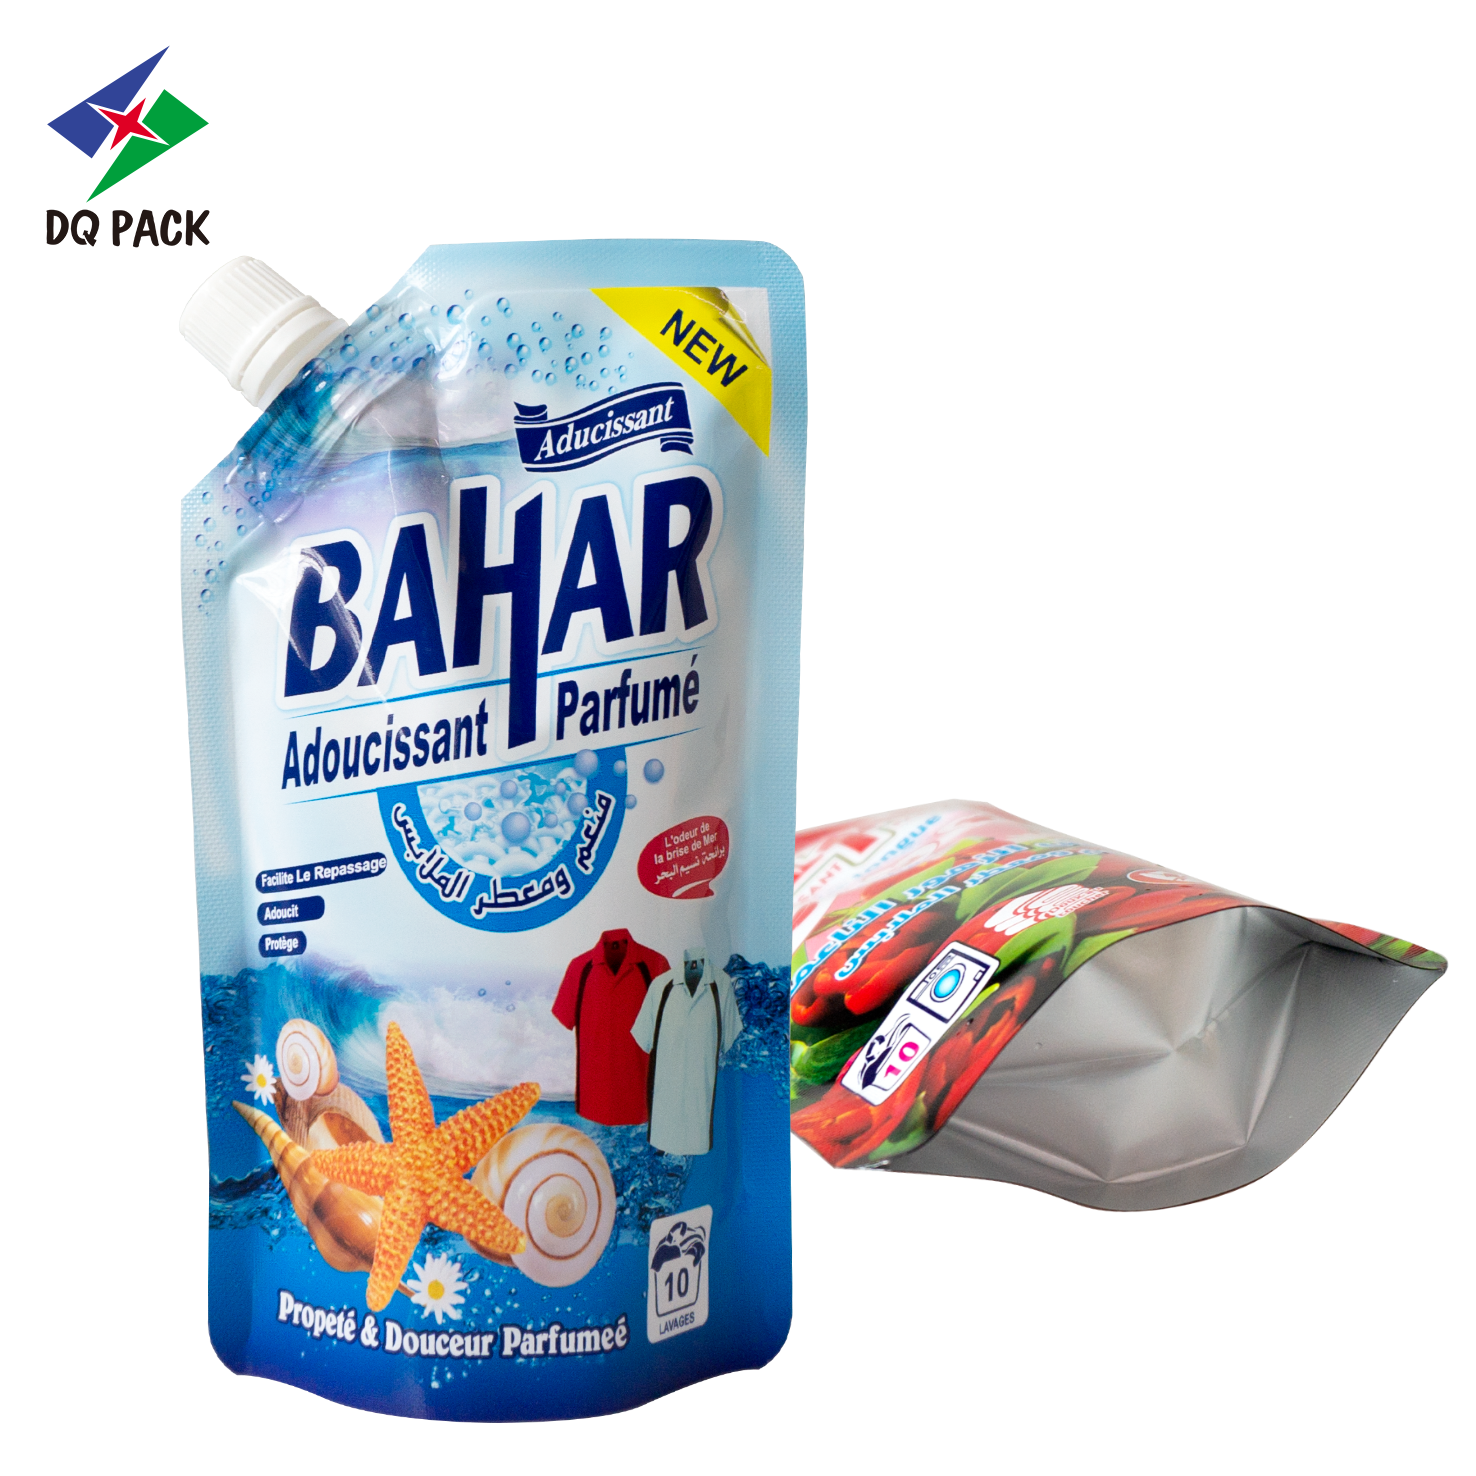 detergent packaging spout pouch